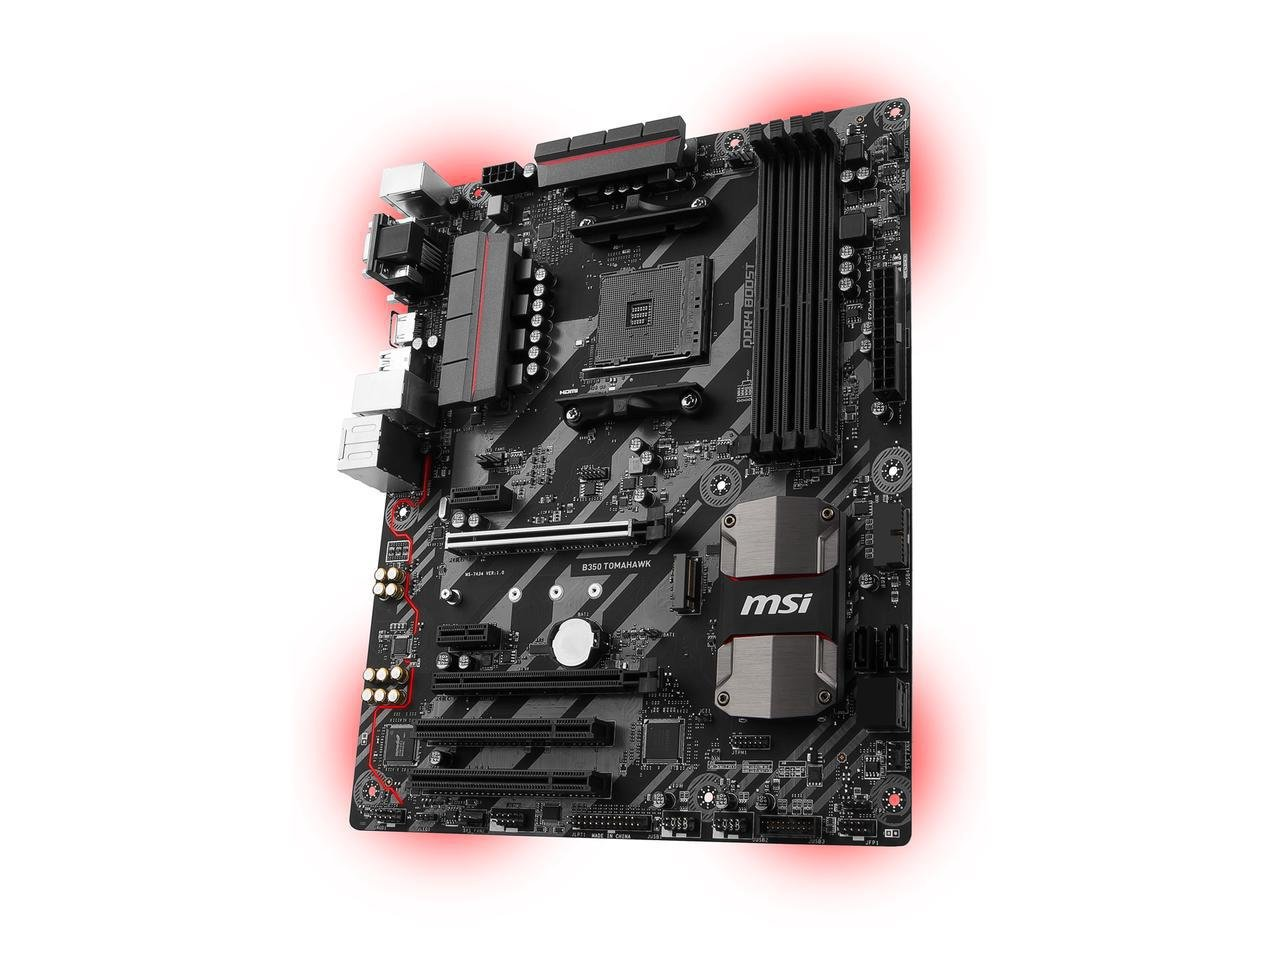 Msi B350 Tomahawk Am4 Amd B350 Sata 6Gb/S Hdmi Atx Motherboard